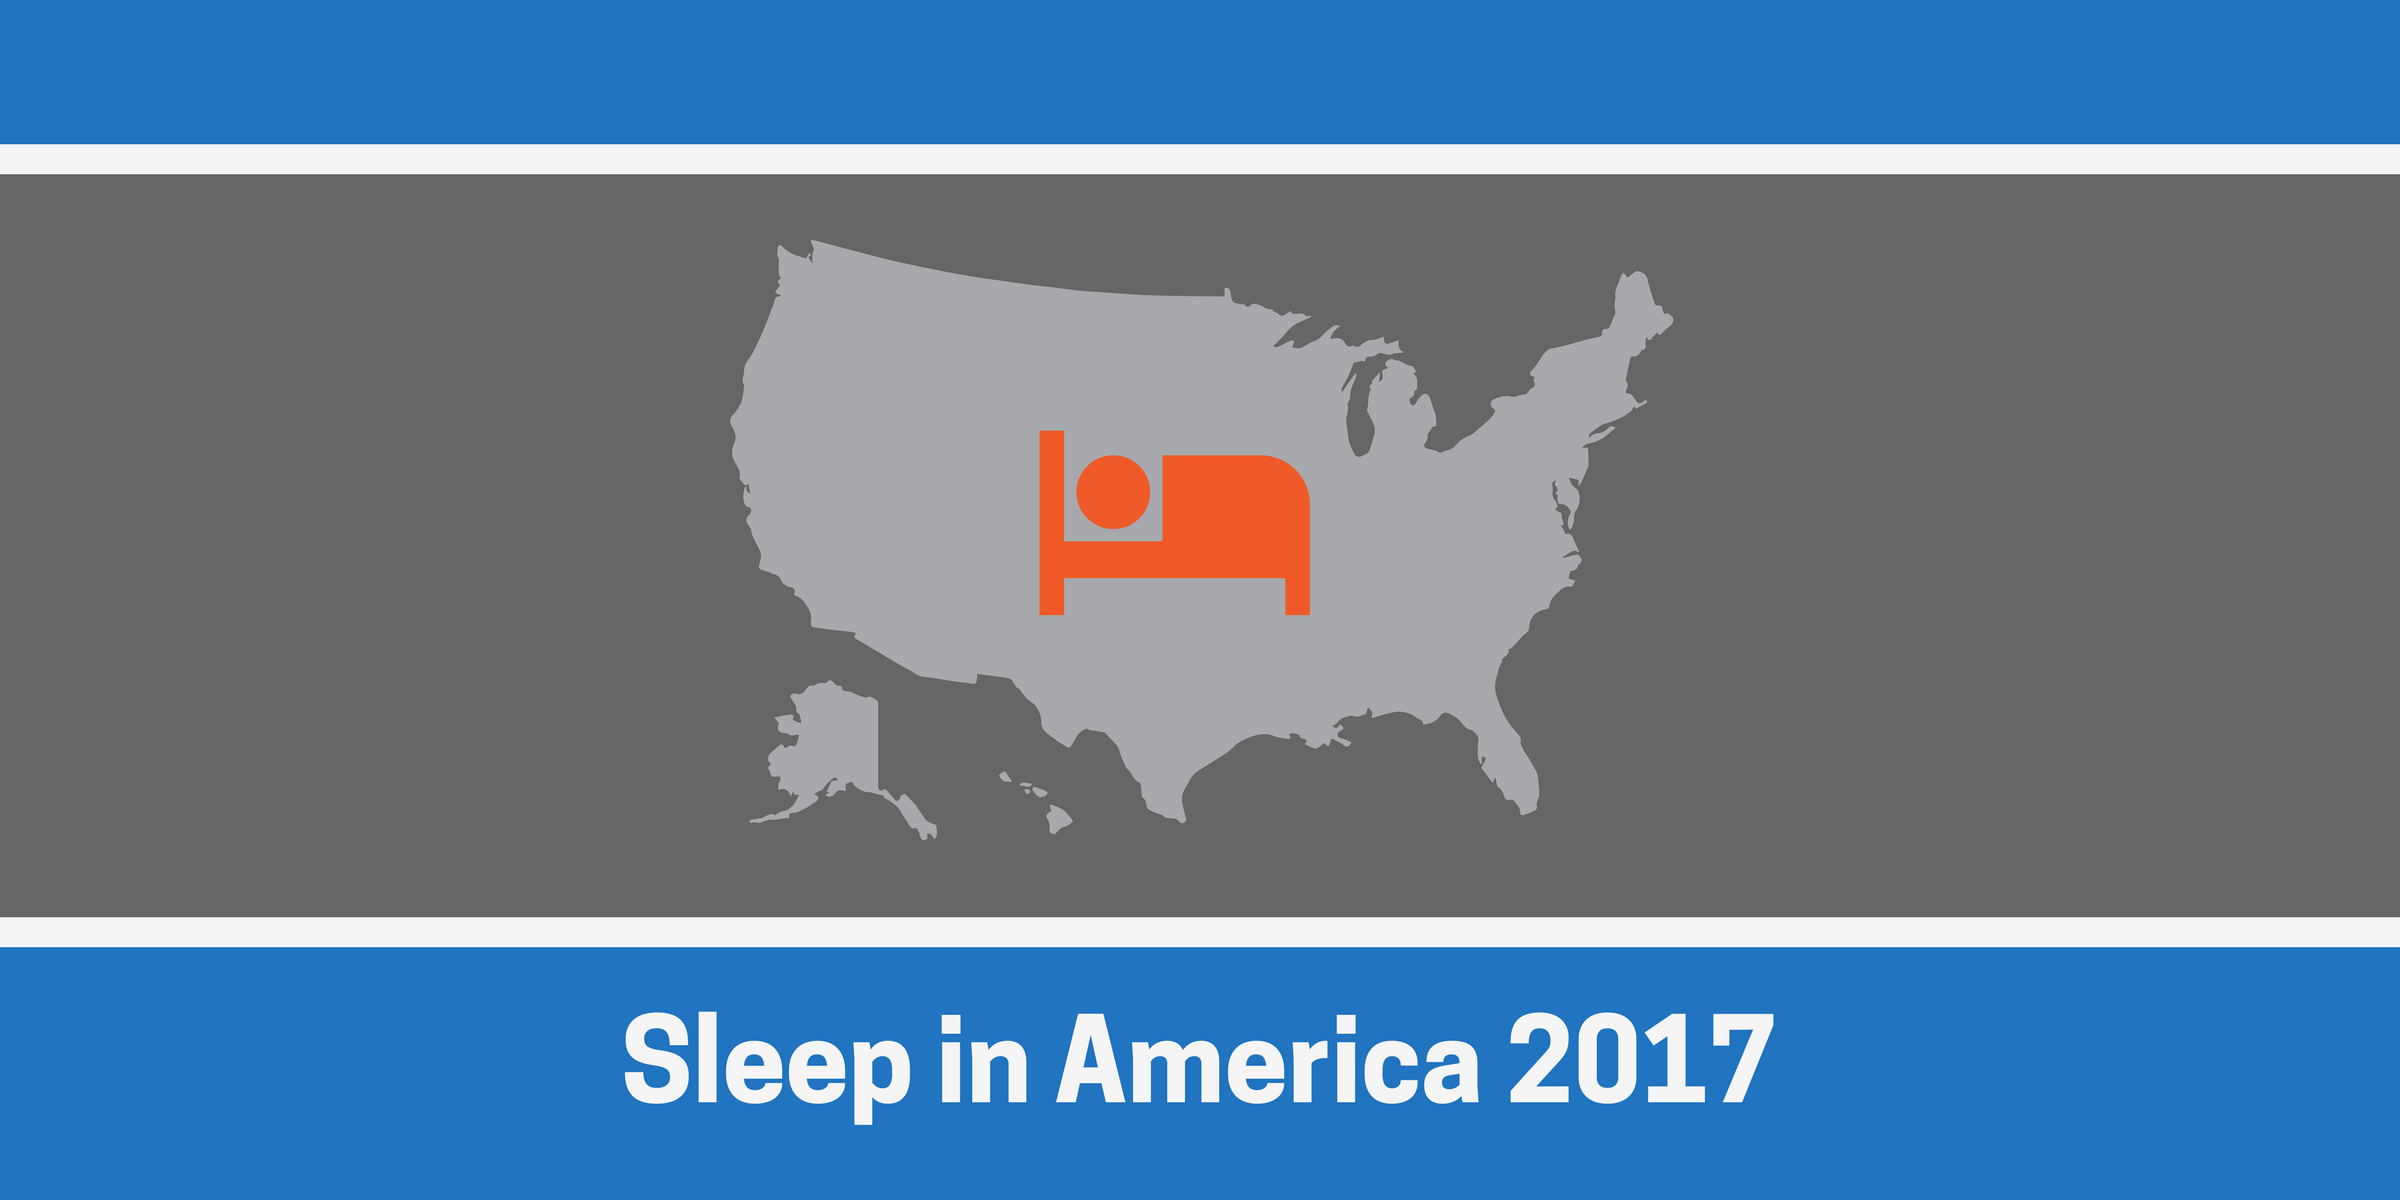 Sleep in America 2017